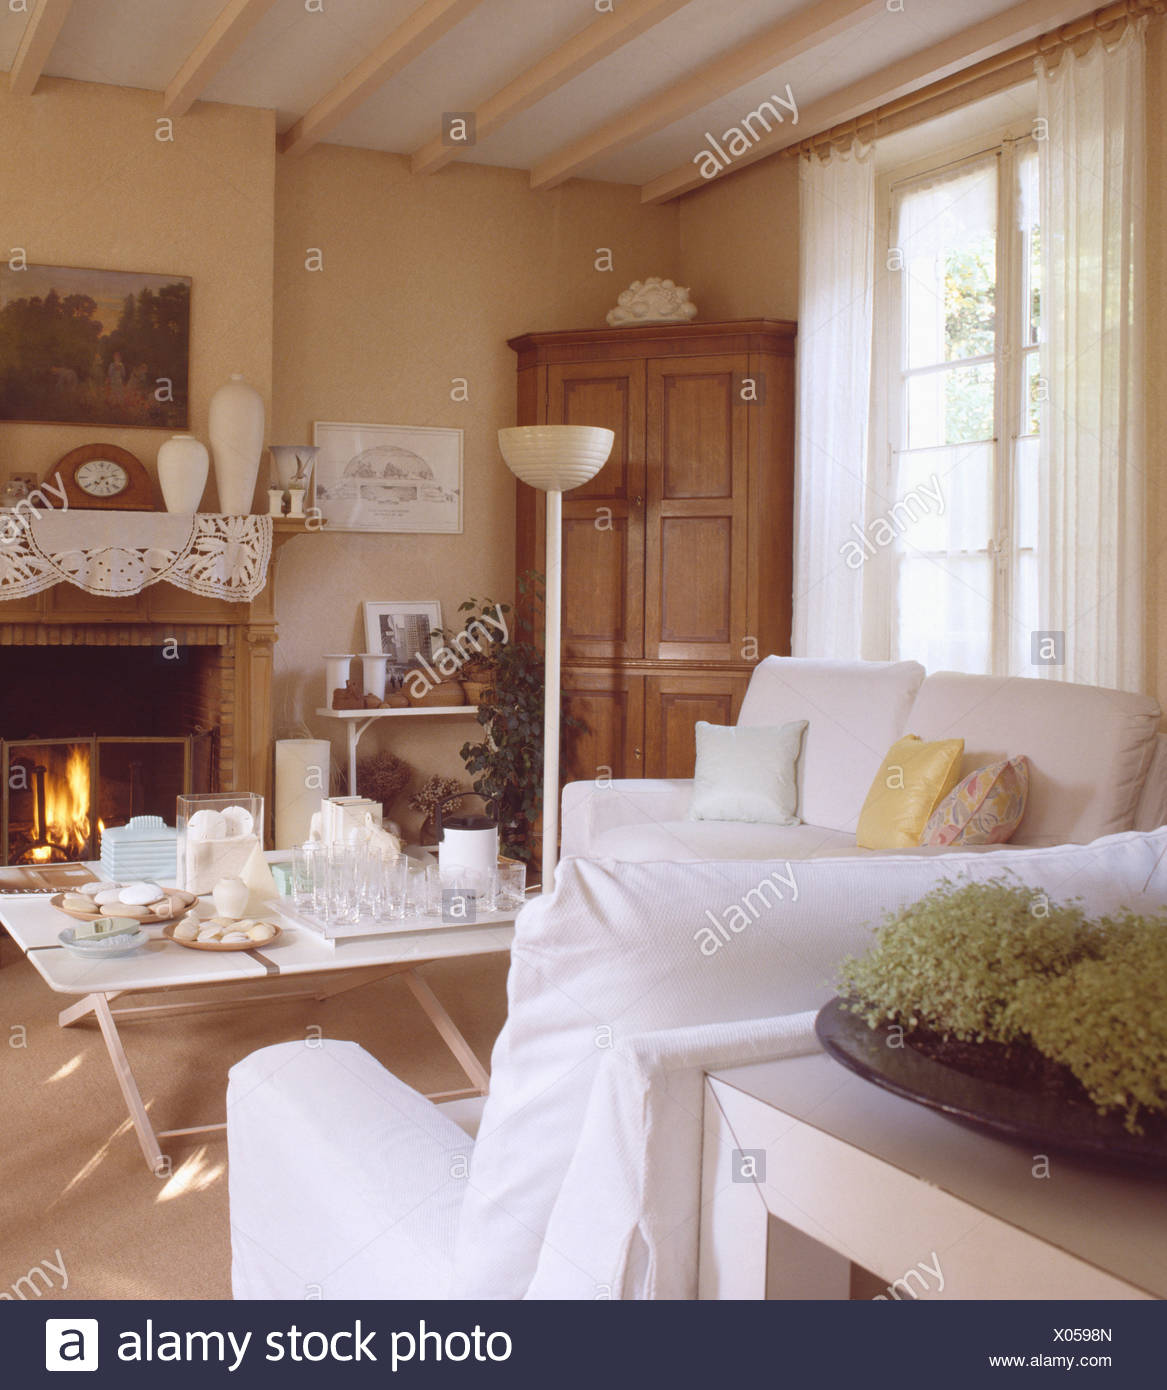 French Country Fireplace White Loosecovers On Sofas In Neutral French Country Living Room